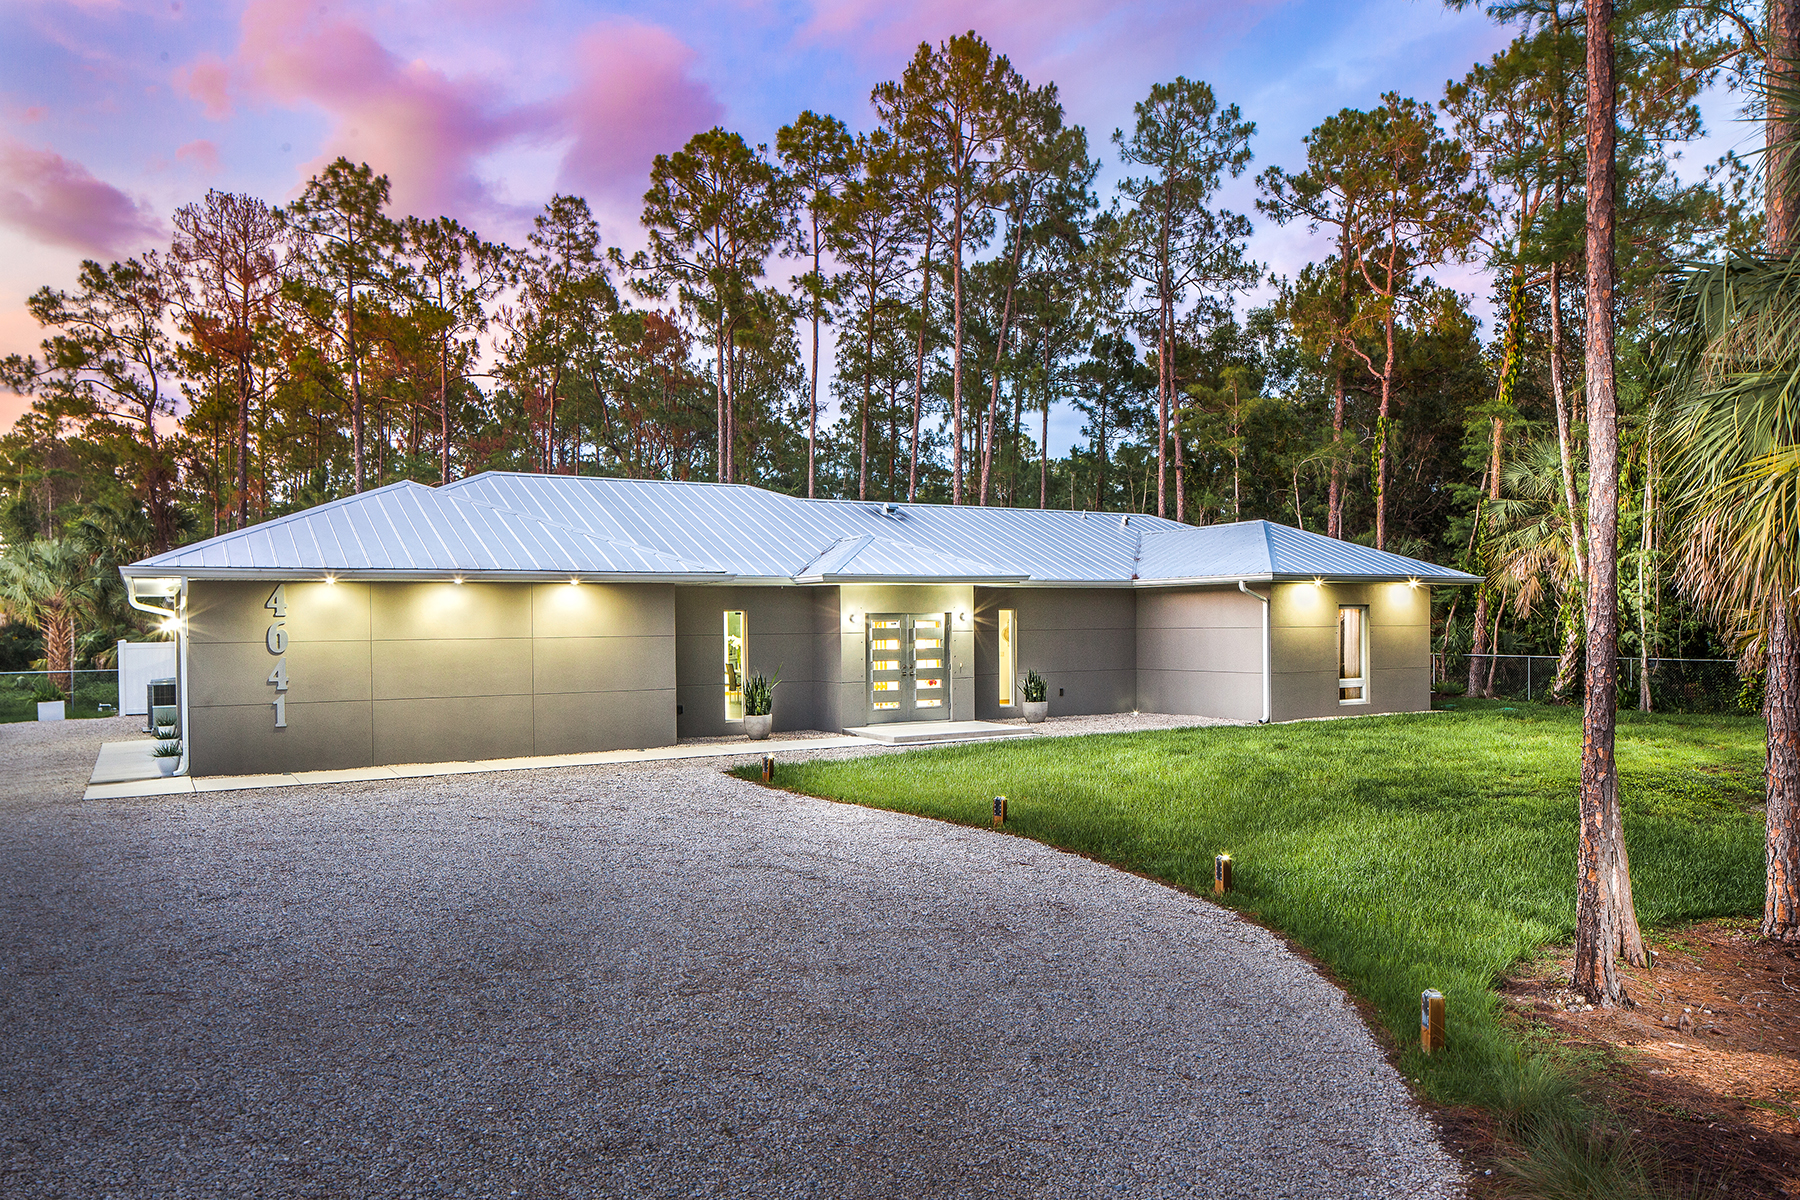 Single Family Home for Sale at GOLDEN GATE ESTATES 4641 7th Ave NW Naples, Florida, 34119 United States